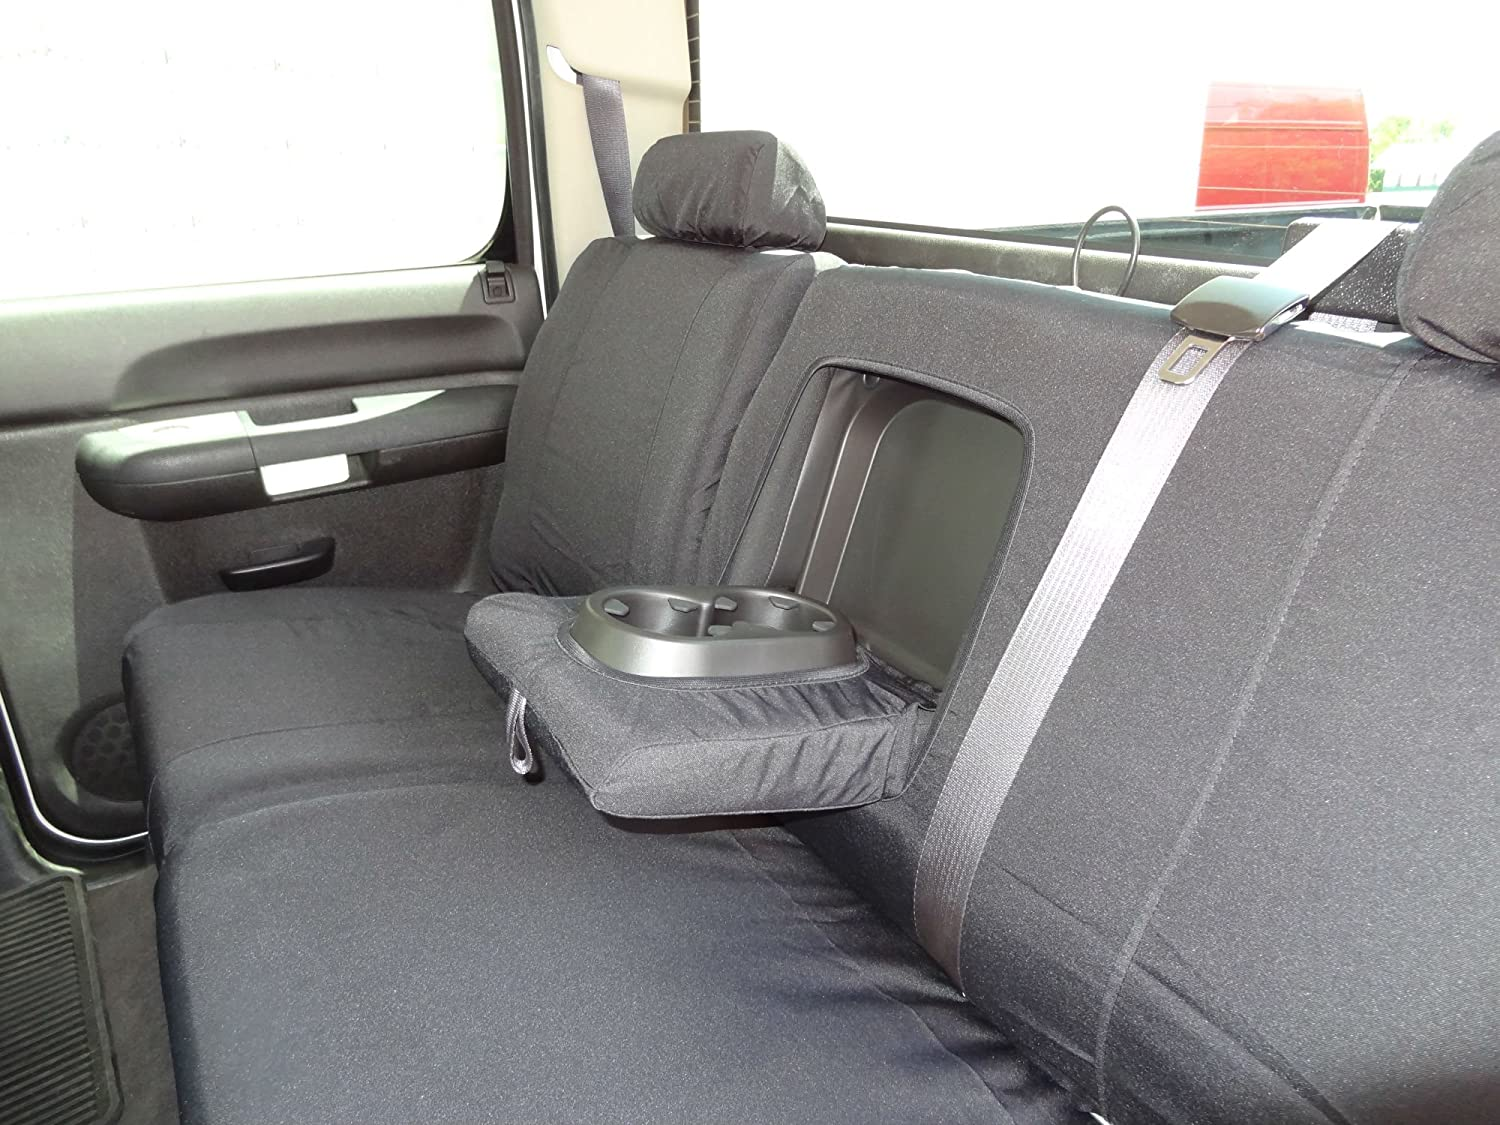 Durafit Seat Covers 2007 2013 Chevy Silverado And Gmc 1942 Truck Sierra Double Cab Exact Fit Rear Waterproof In Black Endura Fabric Automotive